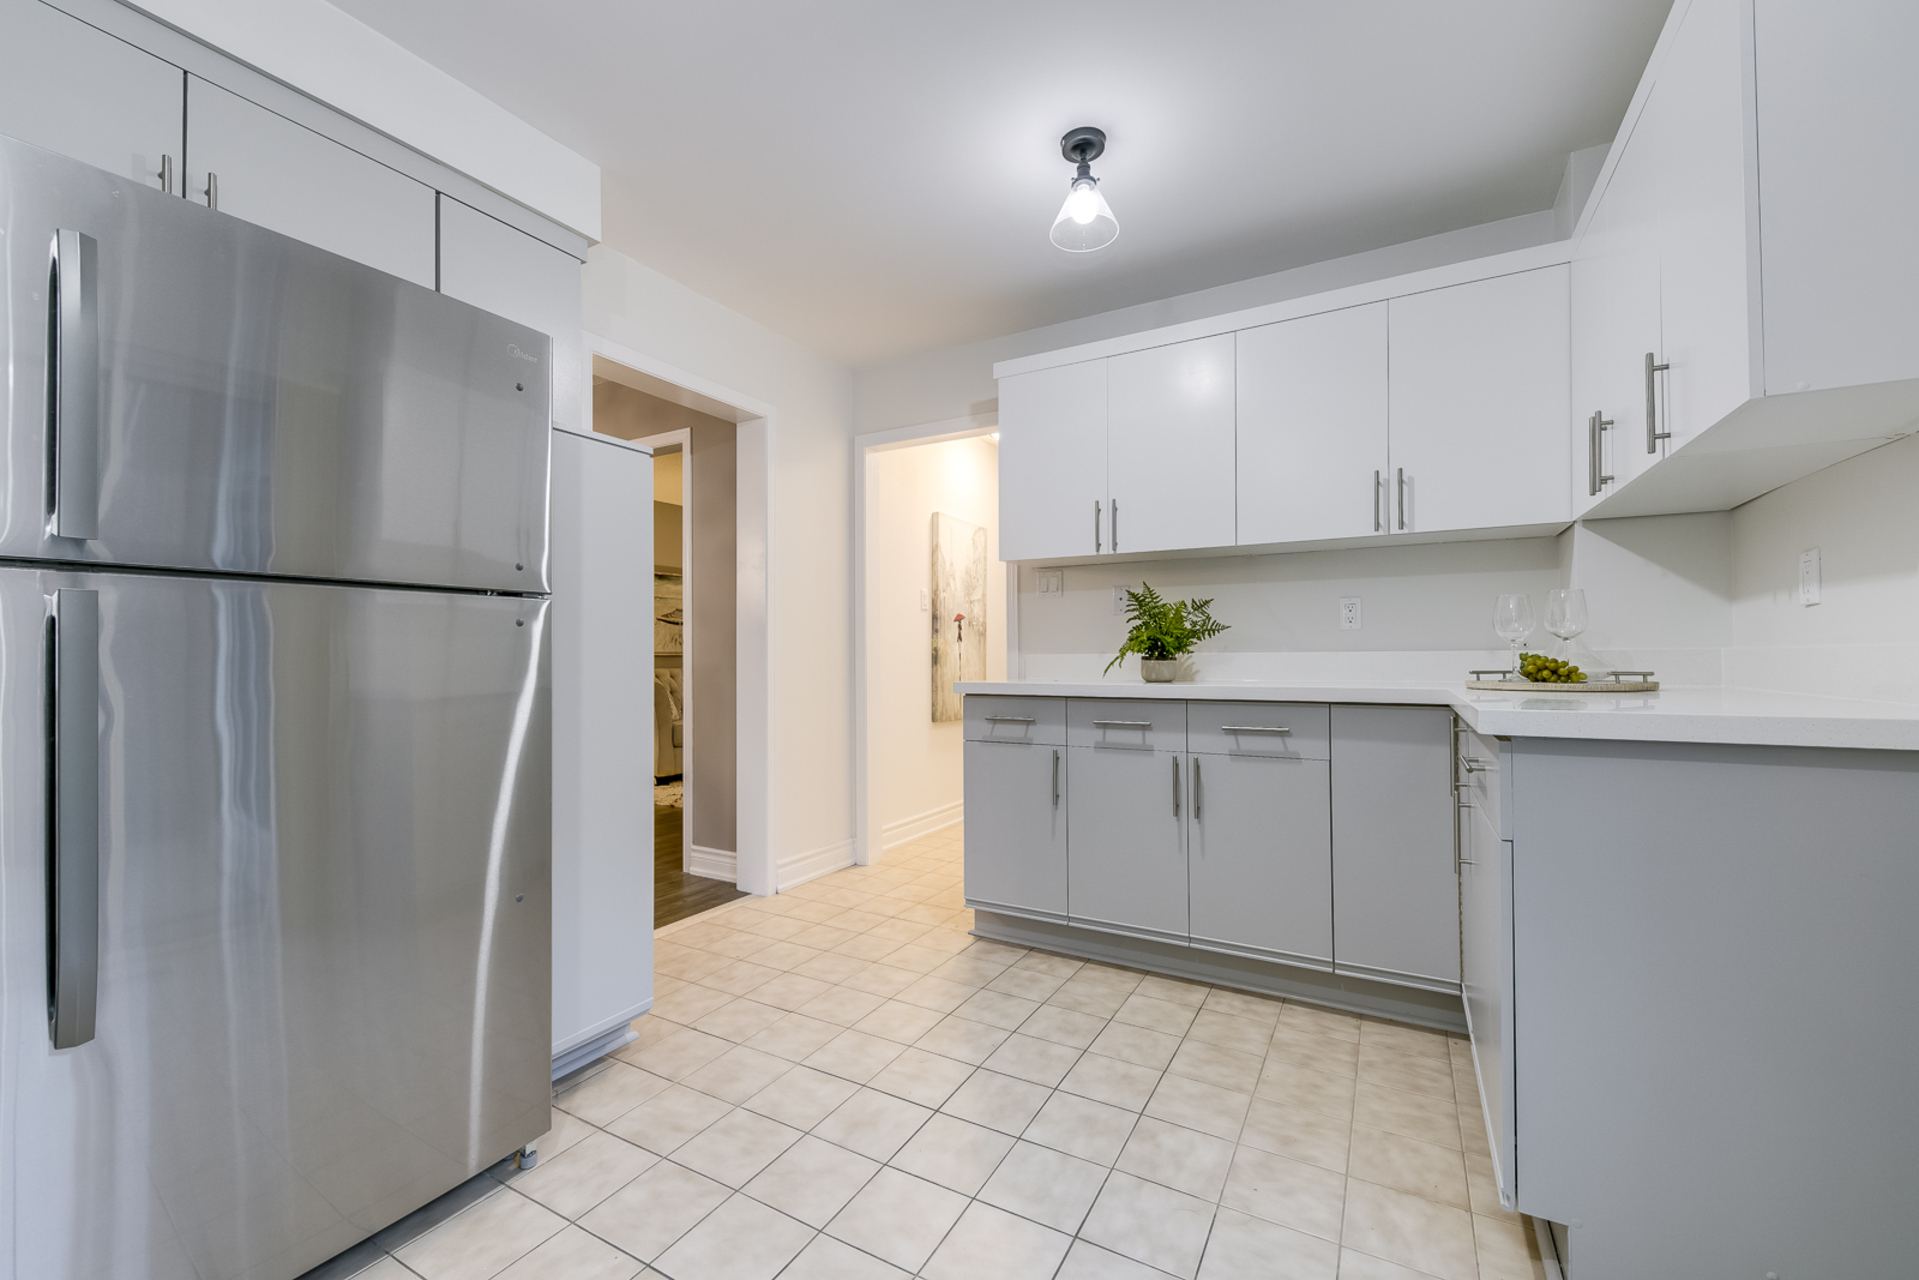 mls-23 at 4246 Wakefield Crescent, Creditview, Mississauga